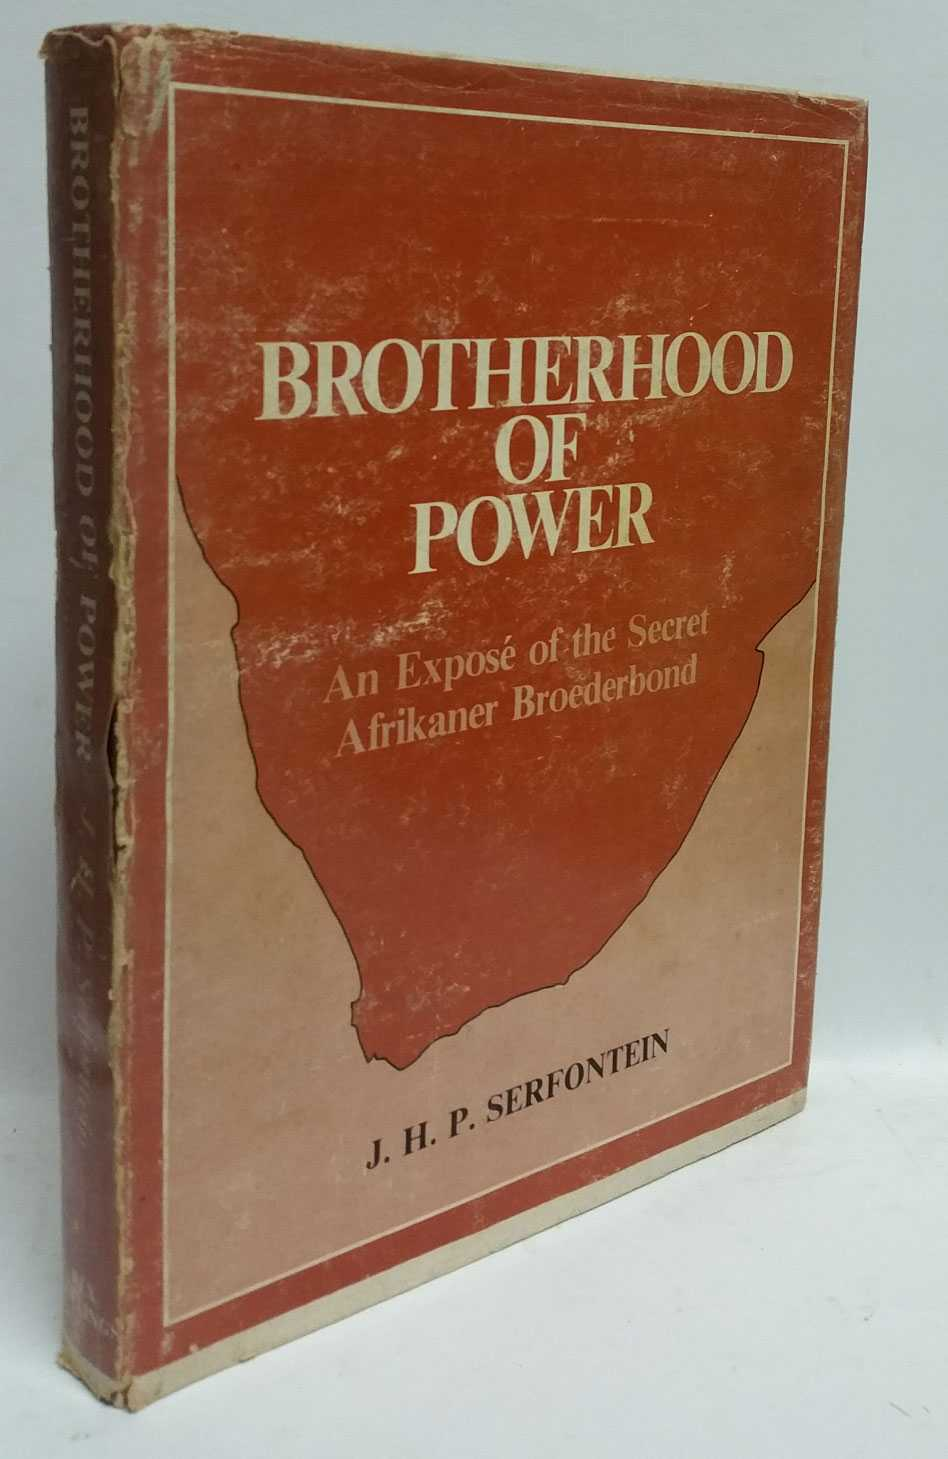 J. H. P. SERFONTEIN - Brotherhood of Power: An Expose of the Secret Afrikaner Broederbond